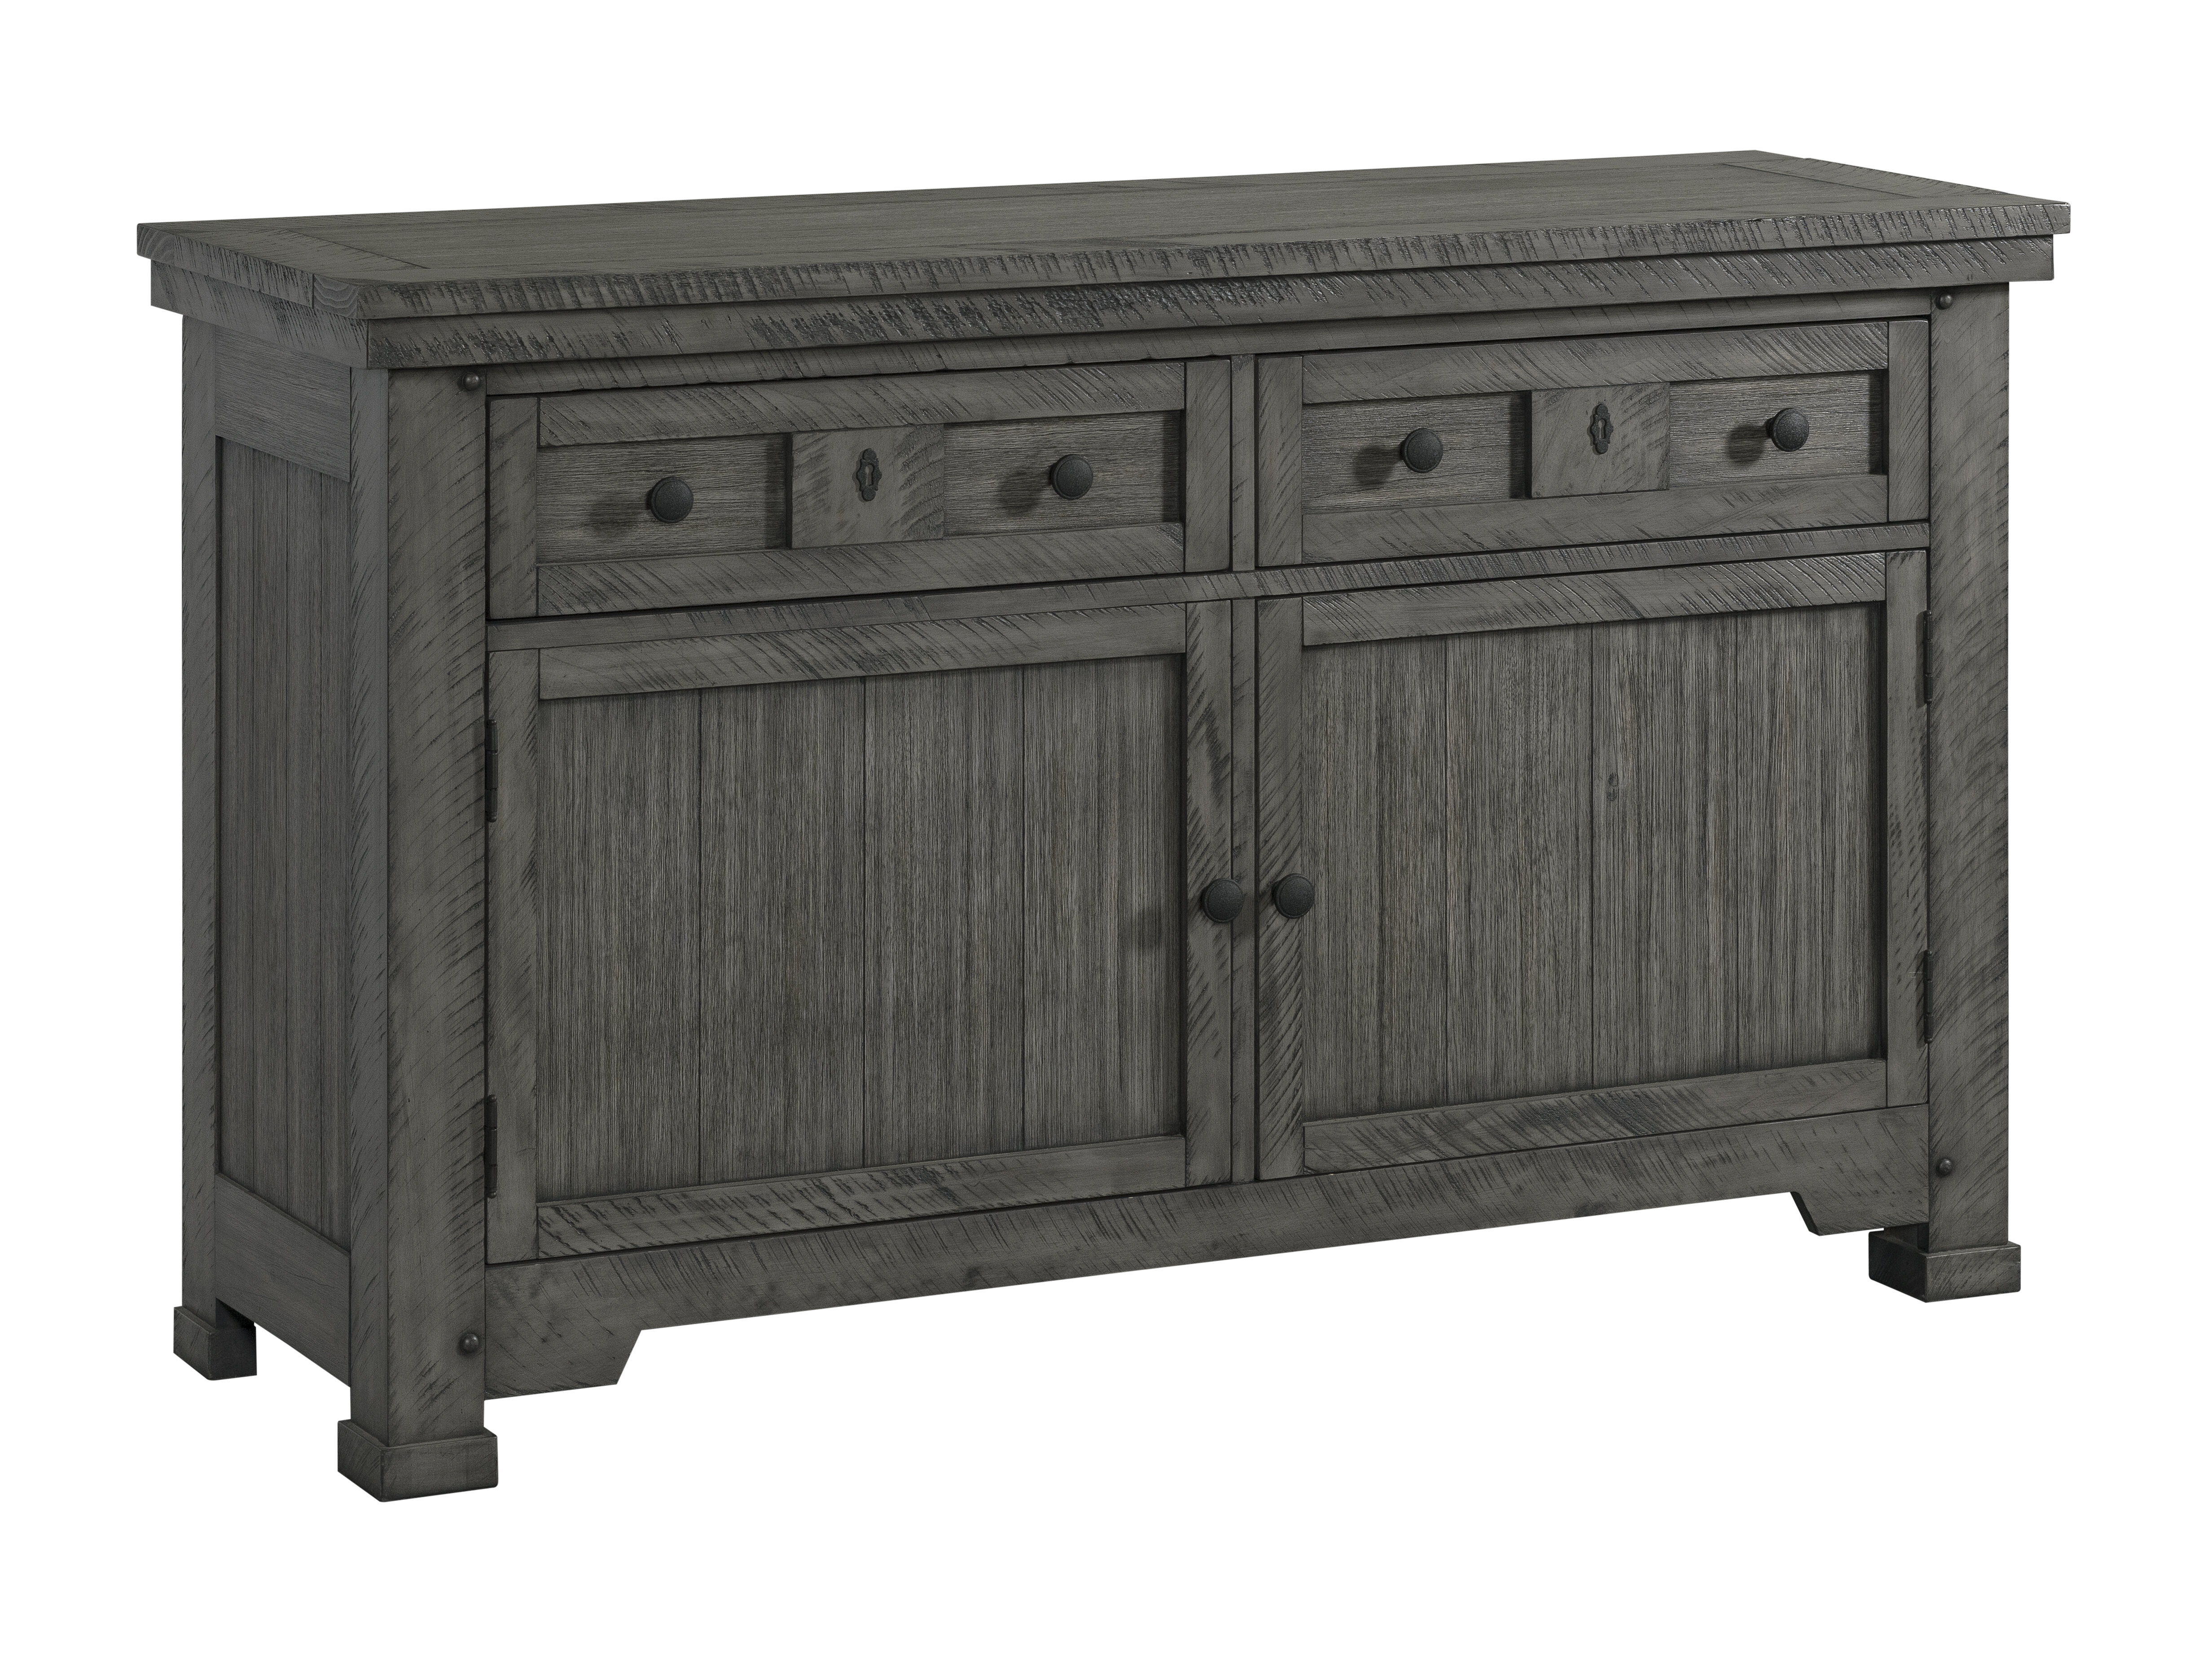 Tandy Sideboard in Chicoree Charlena Sideboards (Image 26 of 30)